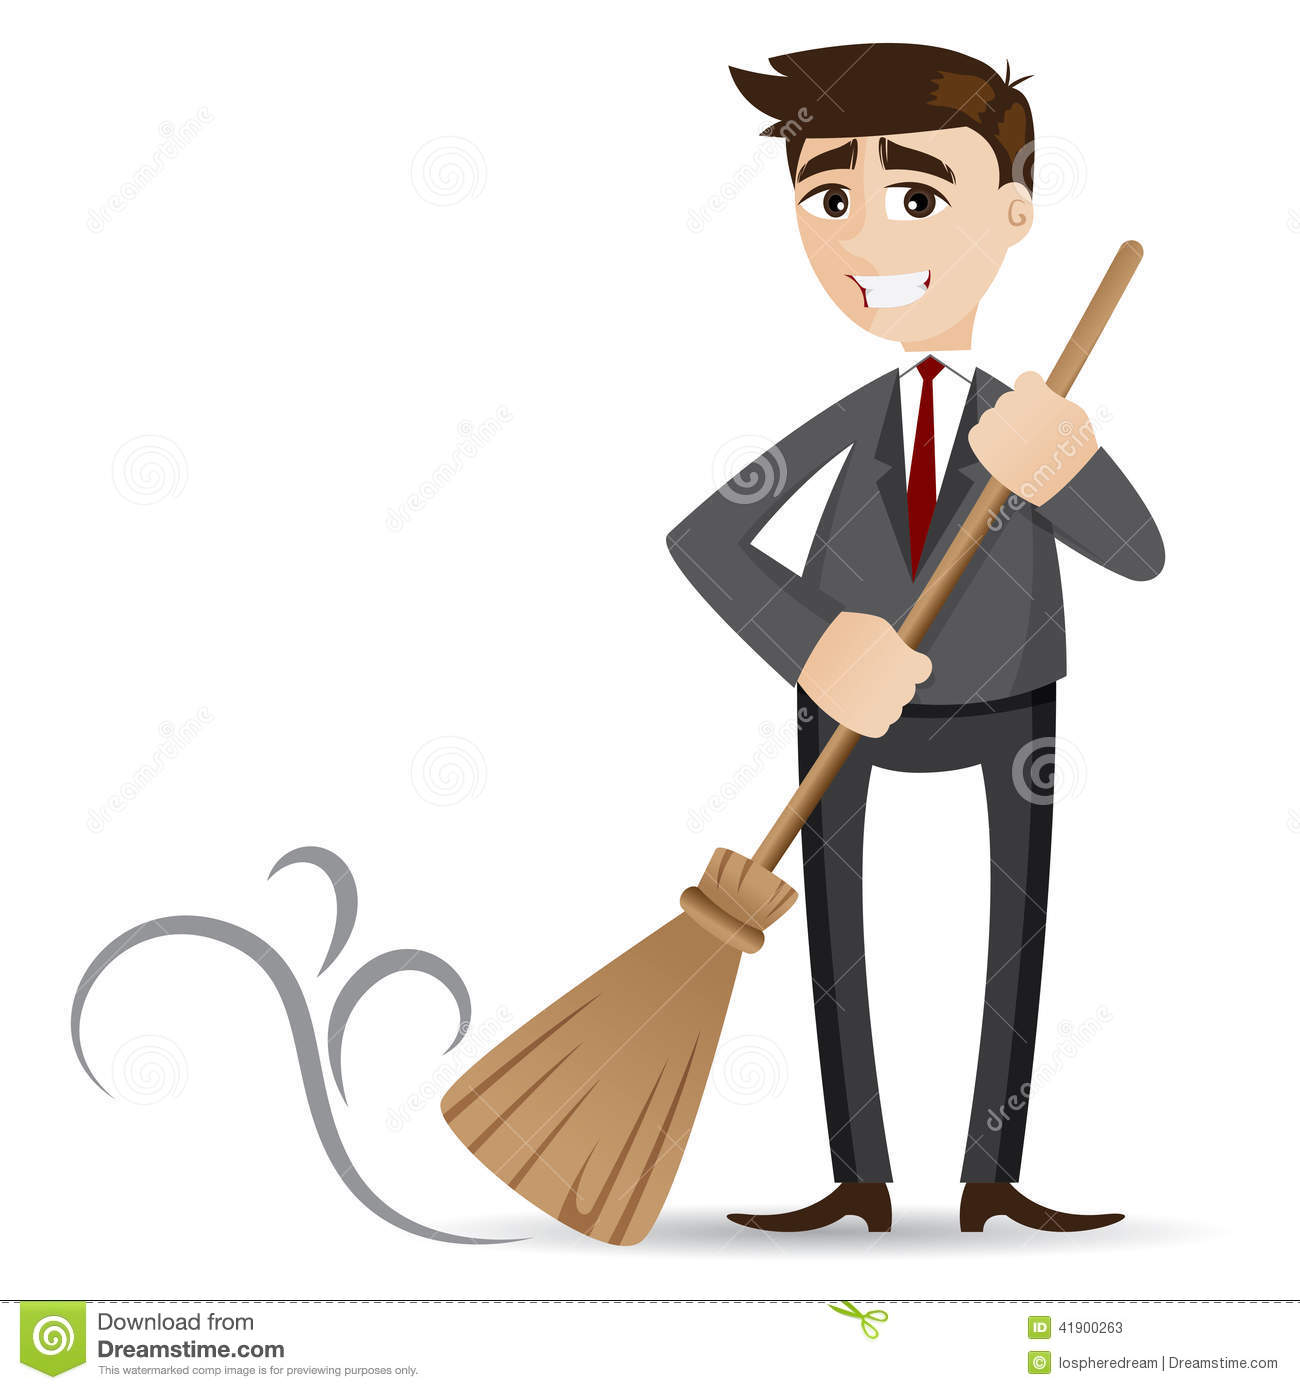 Cartoon Businessman Cleaning With Broom Stock Vector